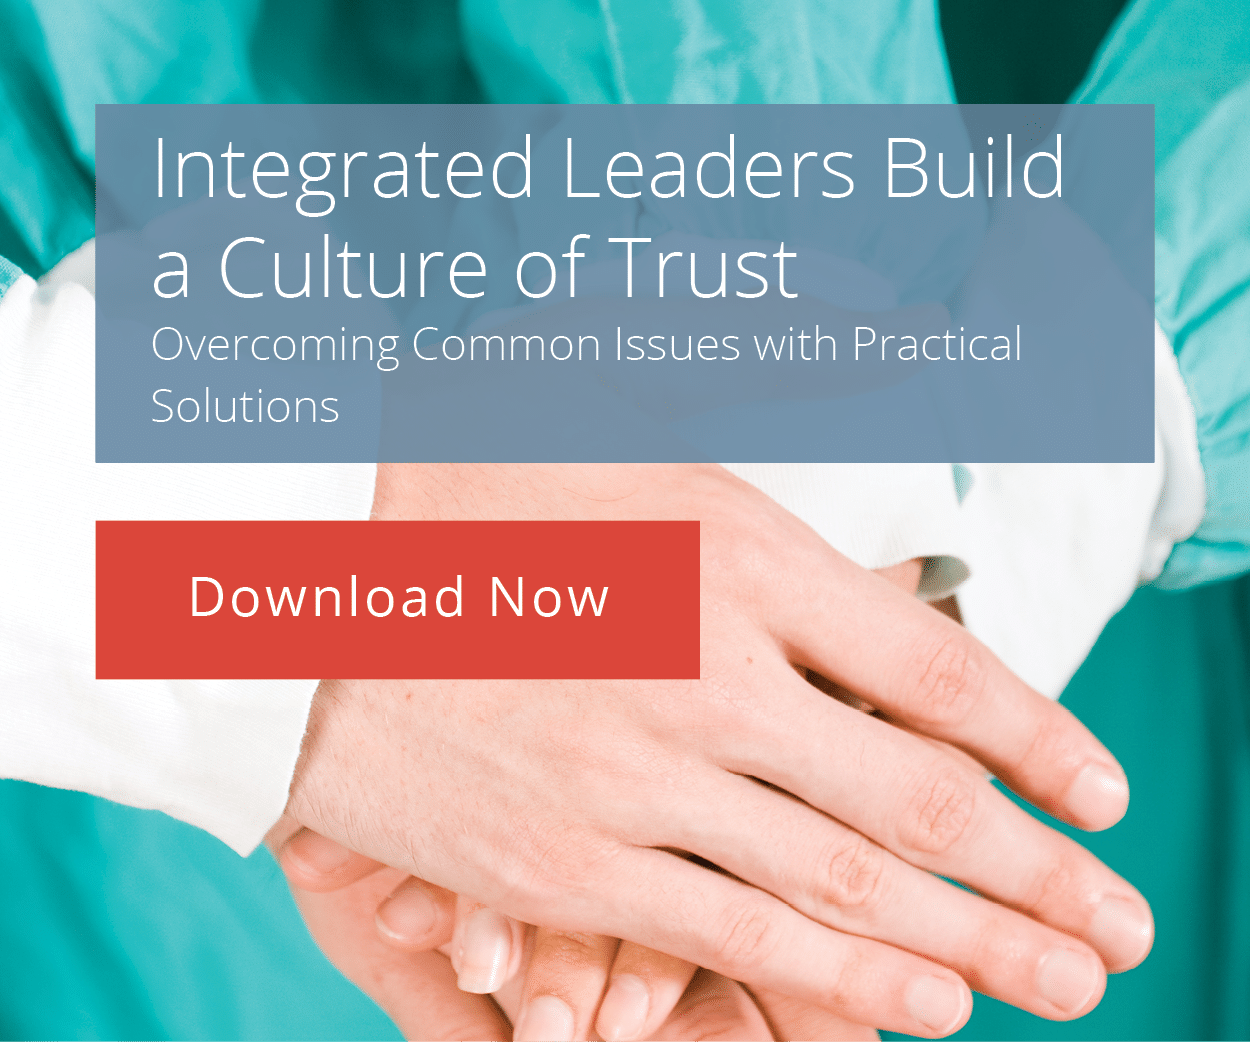 Integrated Leaders Build a Culture of Trust